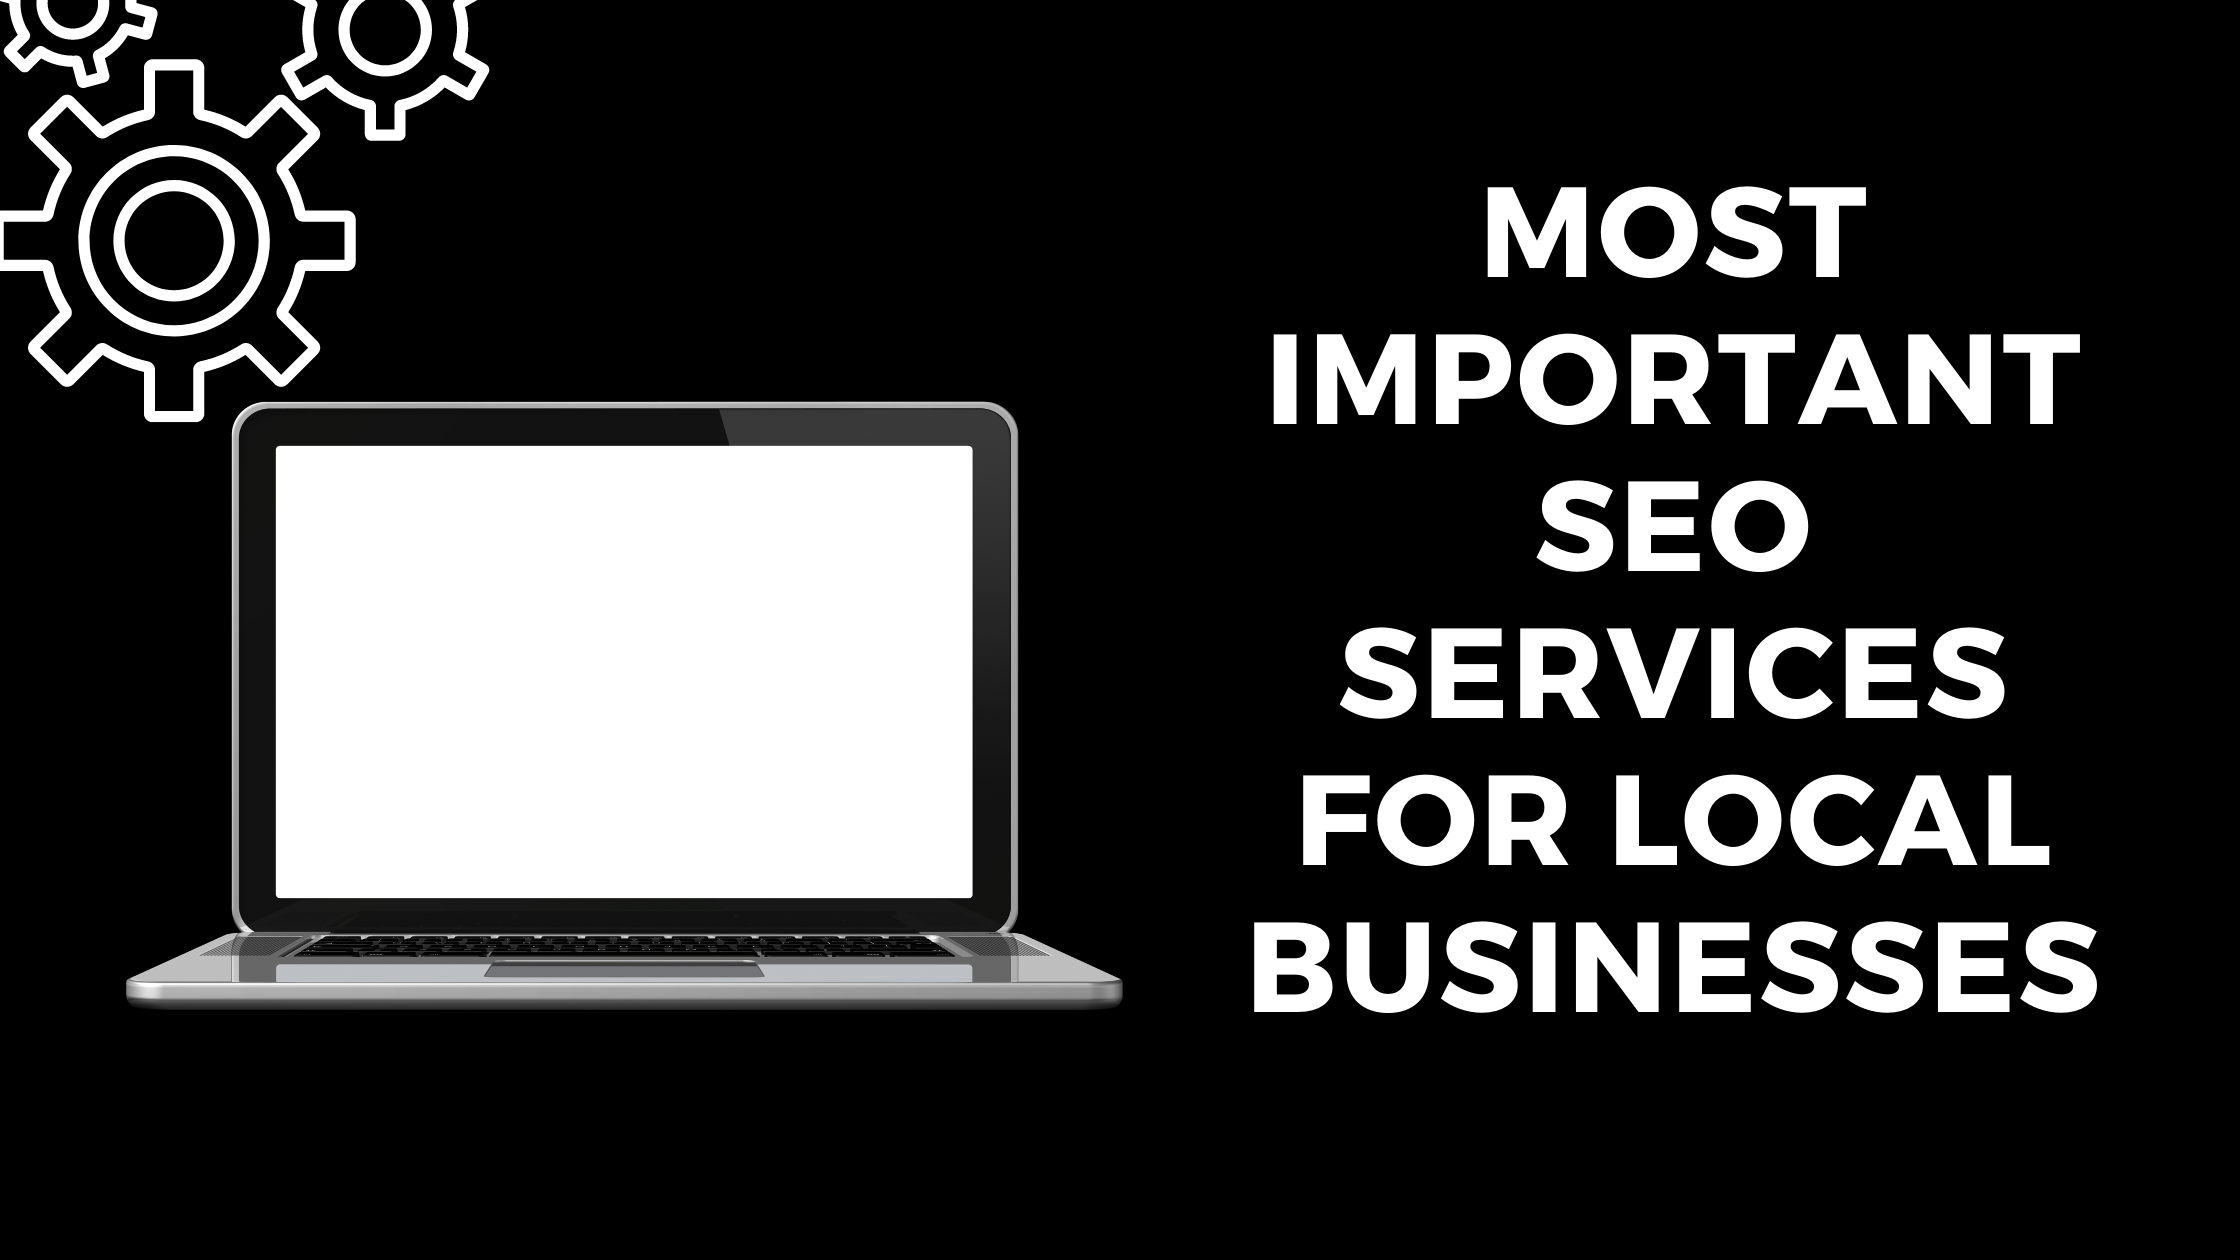 most important SEO services for local businesses